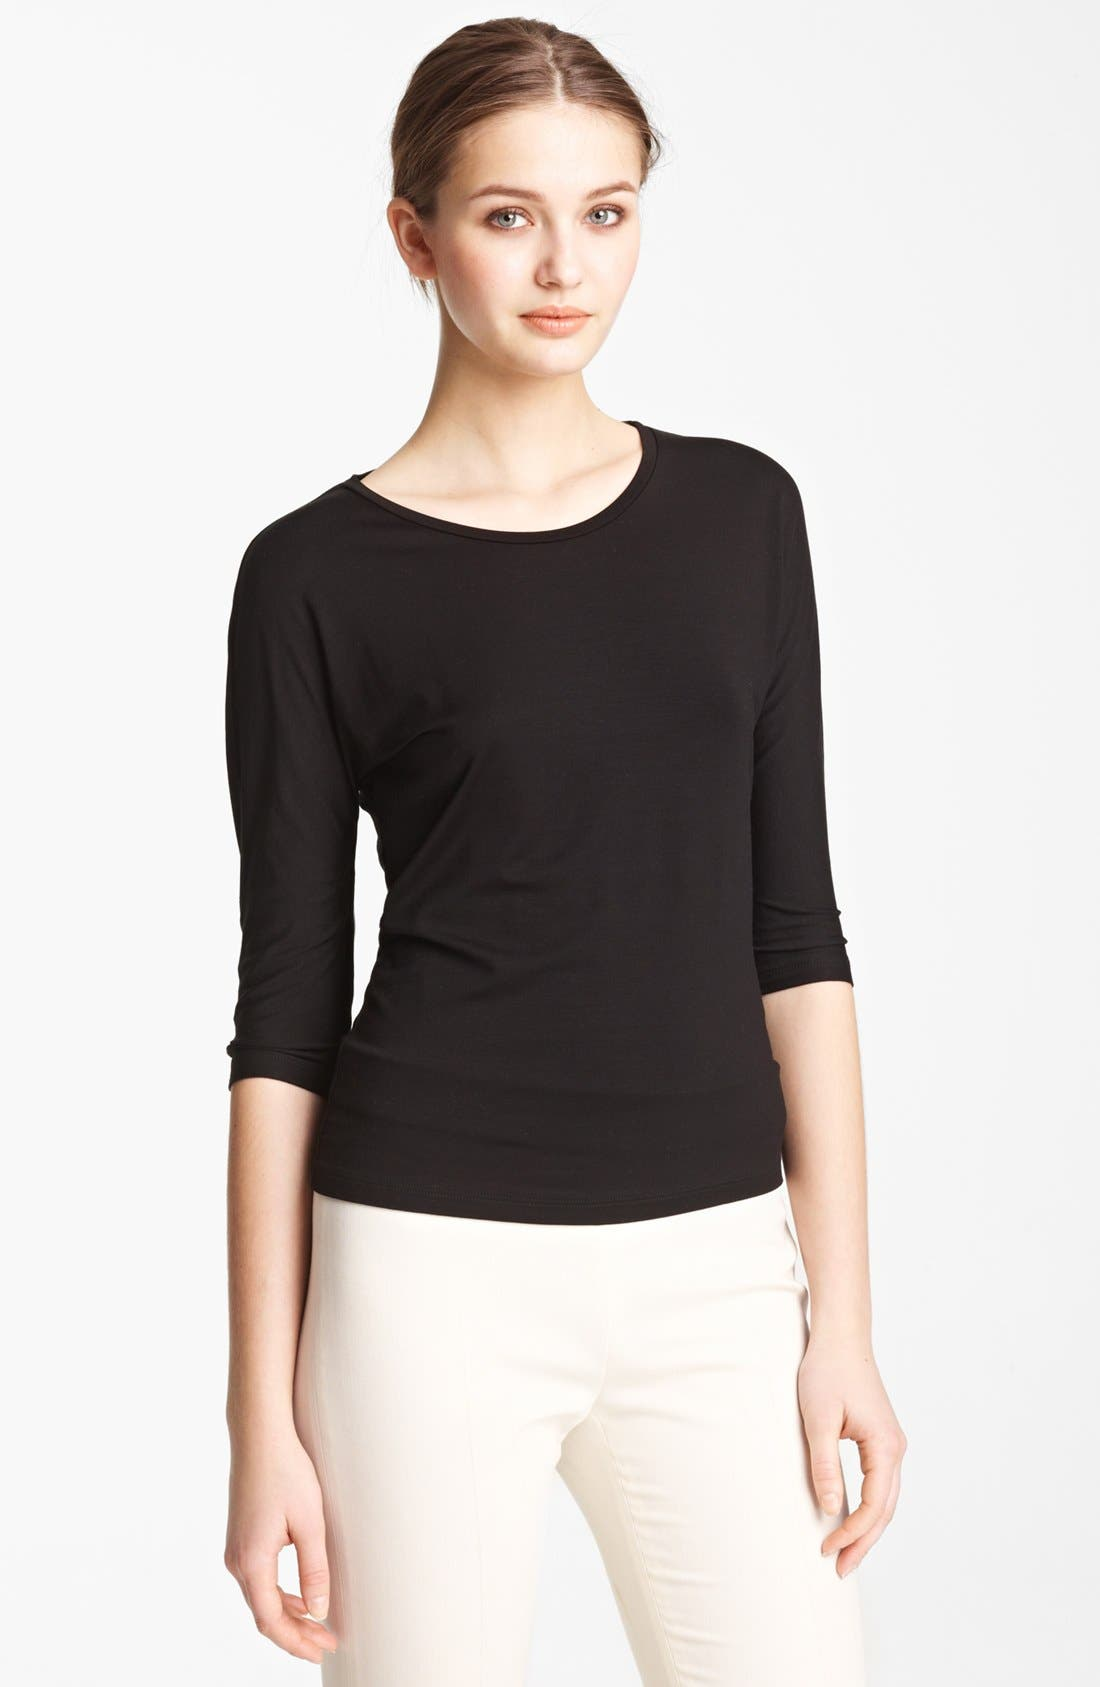 Alternate Image 1 Selected - Max Mara 'Circe' Scoop Neck Jersey Tee